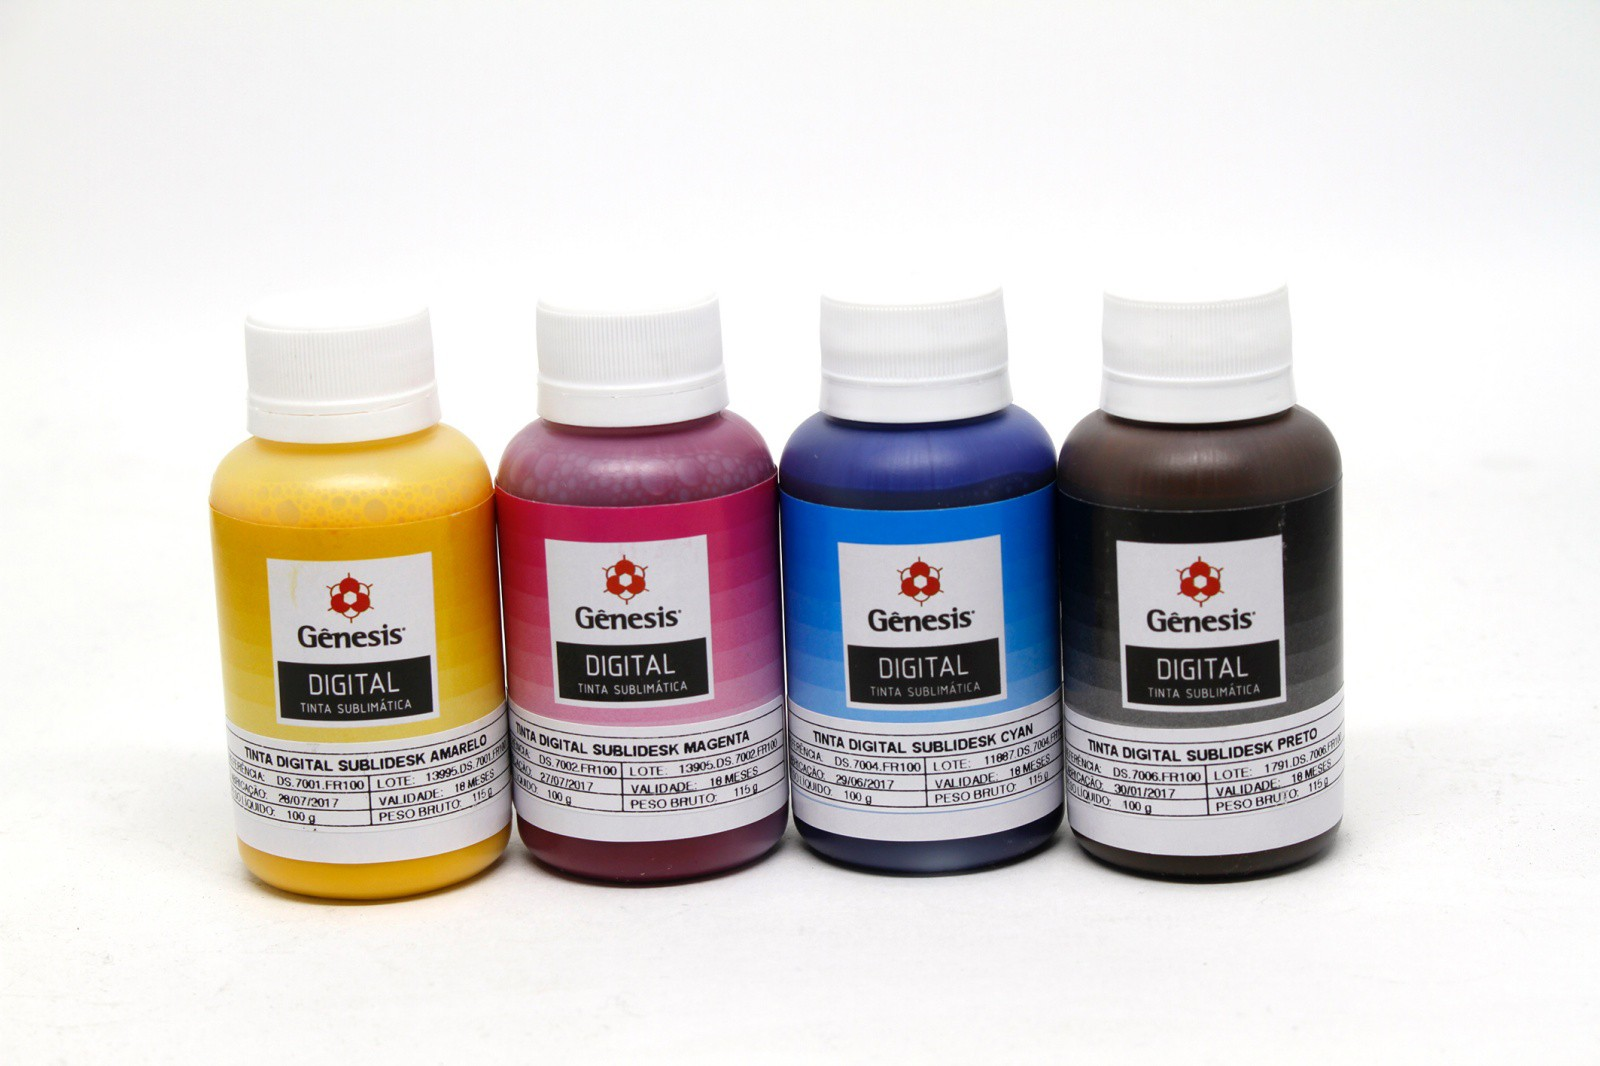 Kit de Tinta Sublimatica Genesis 4x 100 ml